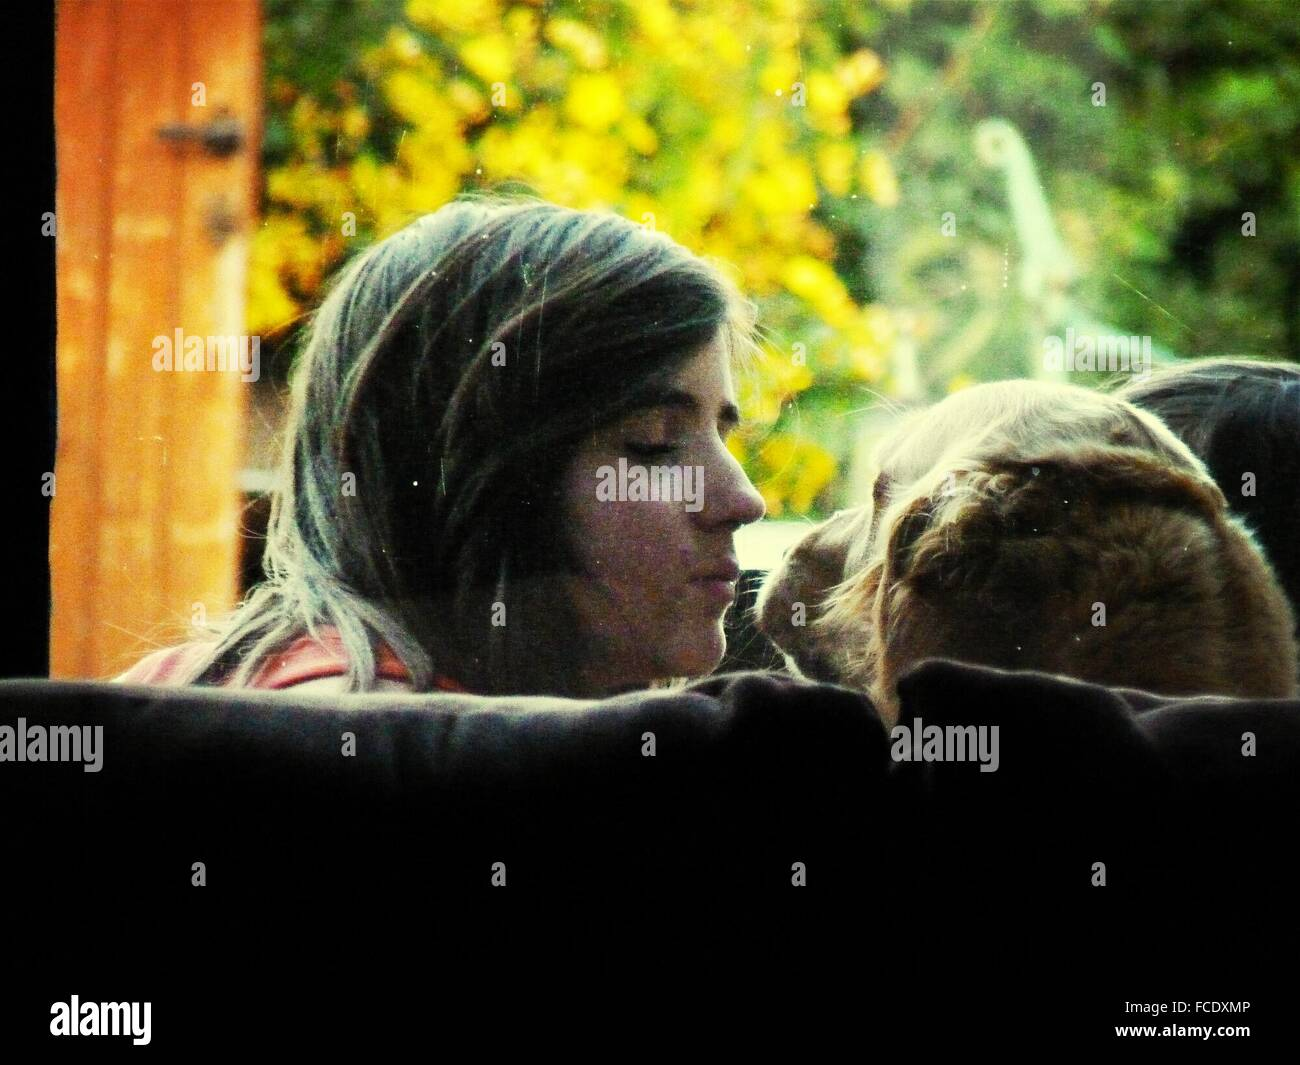 Woman Kissing Dog - Stock Image